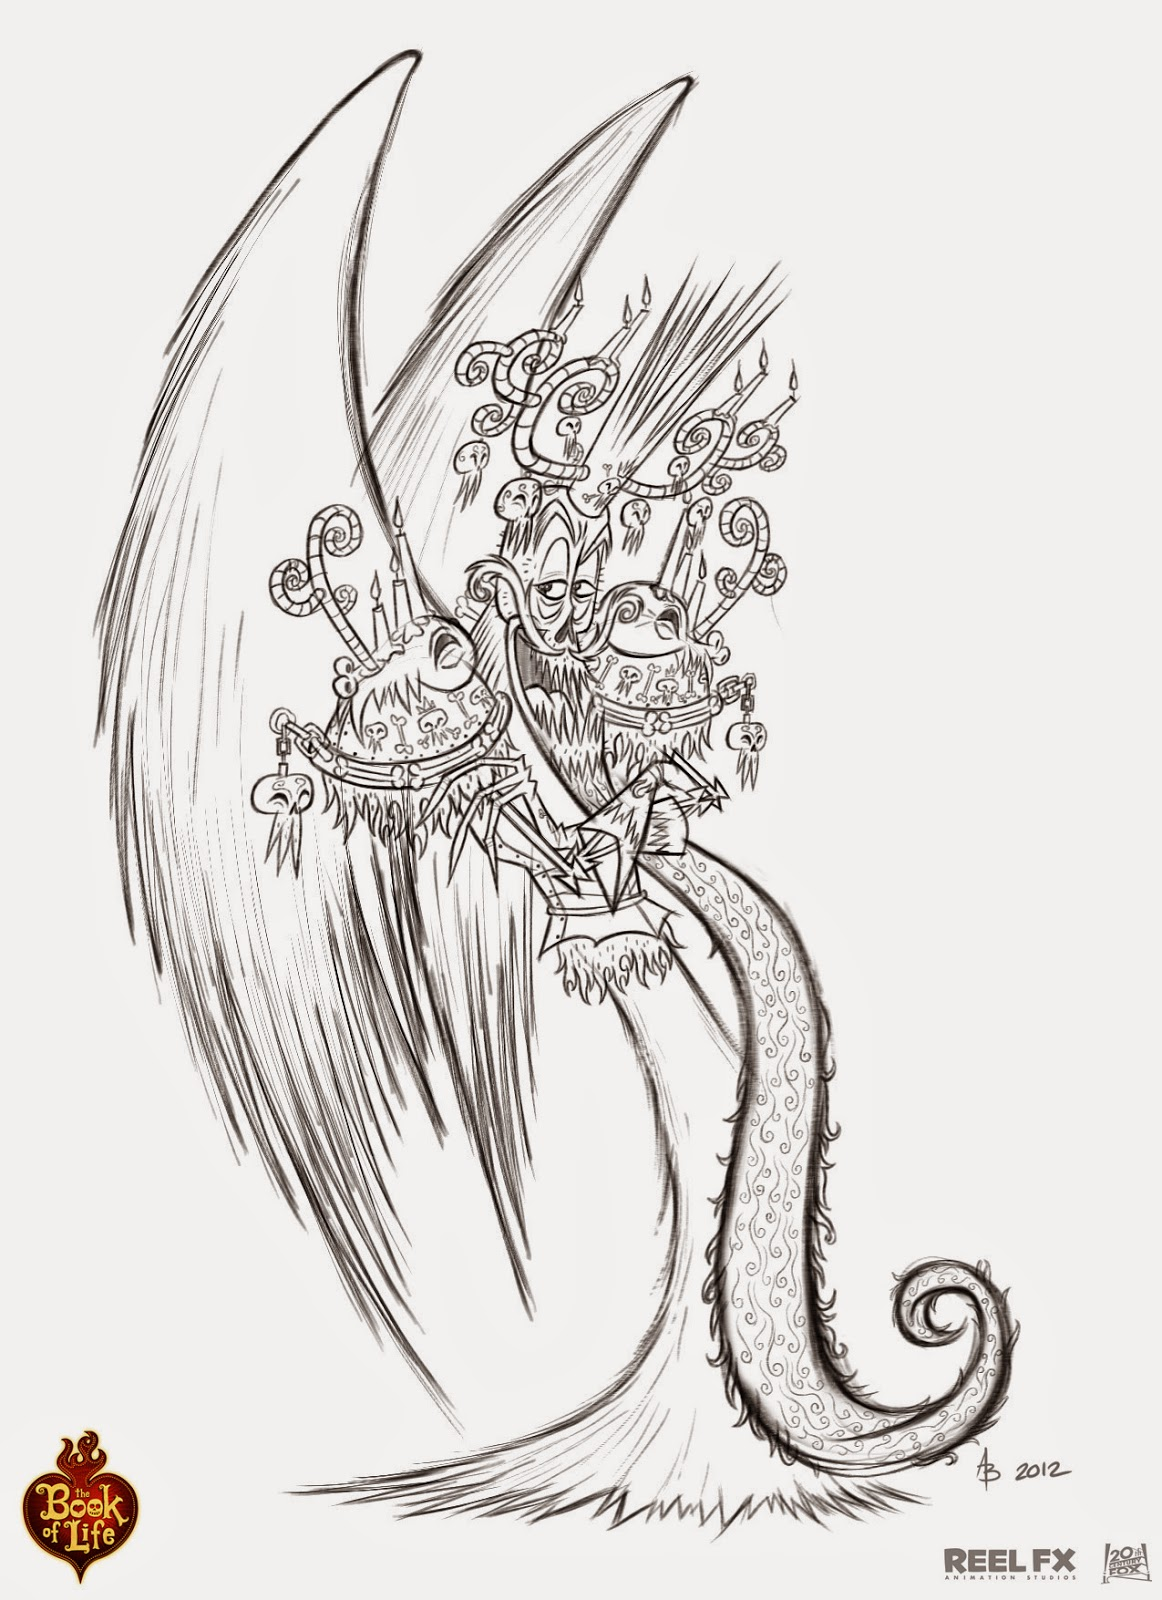 Character Design The Book Of Life : Andy bialk quot the book of life xibalba character poses